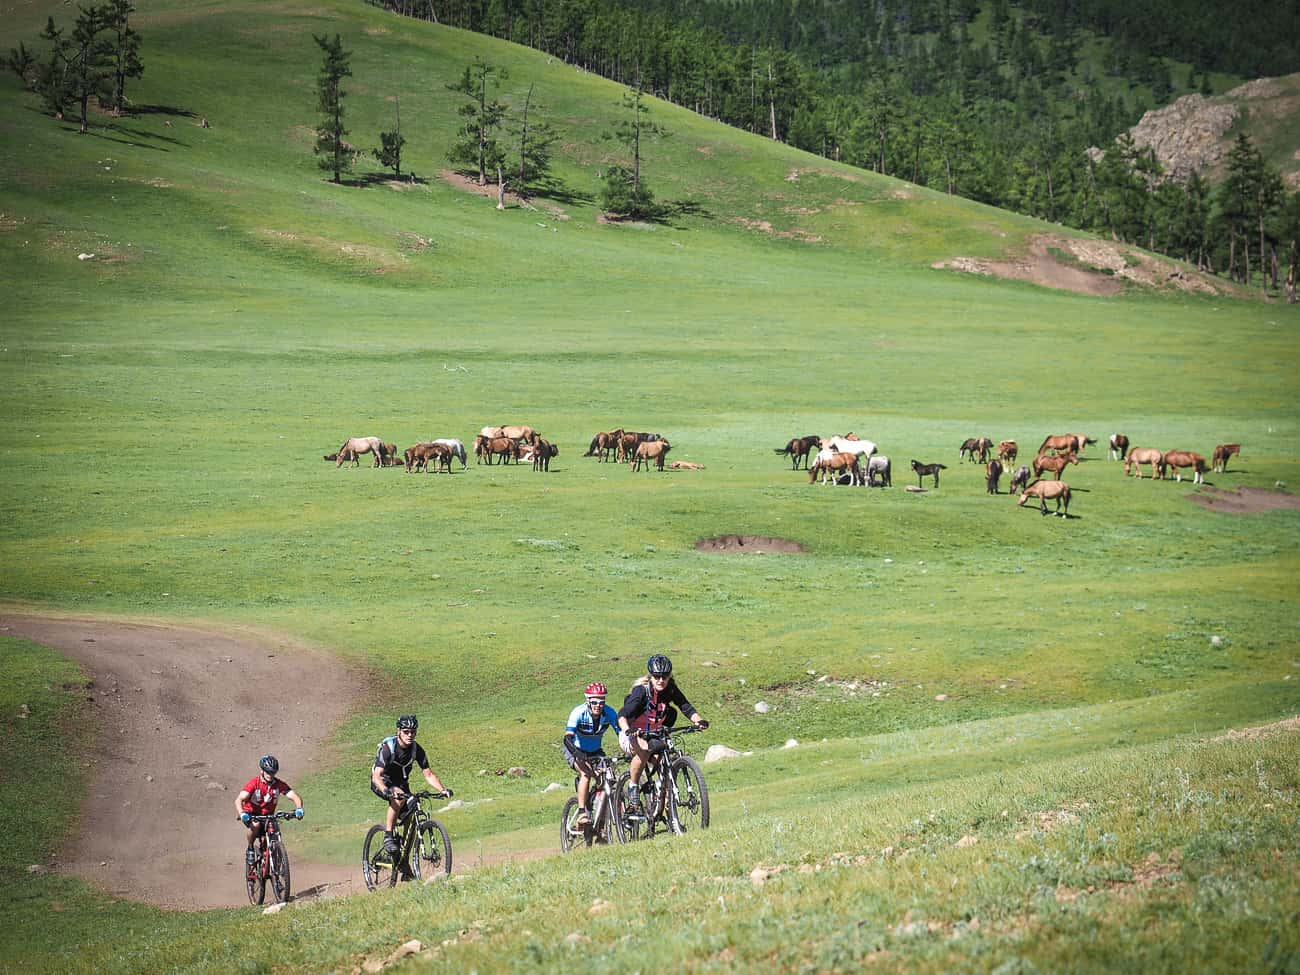 a group of cyclists climbing a hill in Mongolia on a gravel road